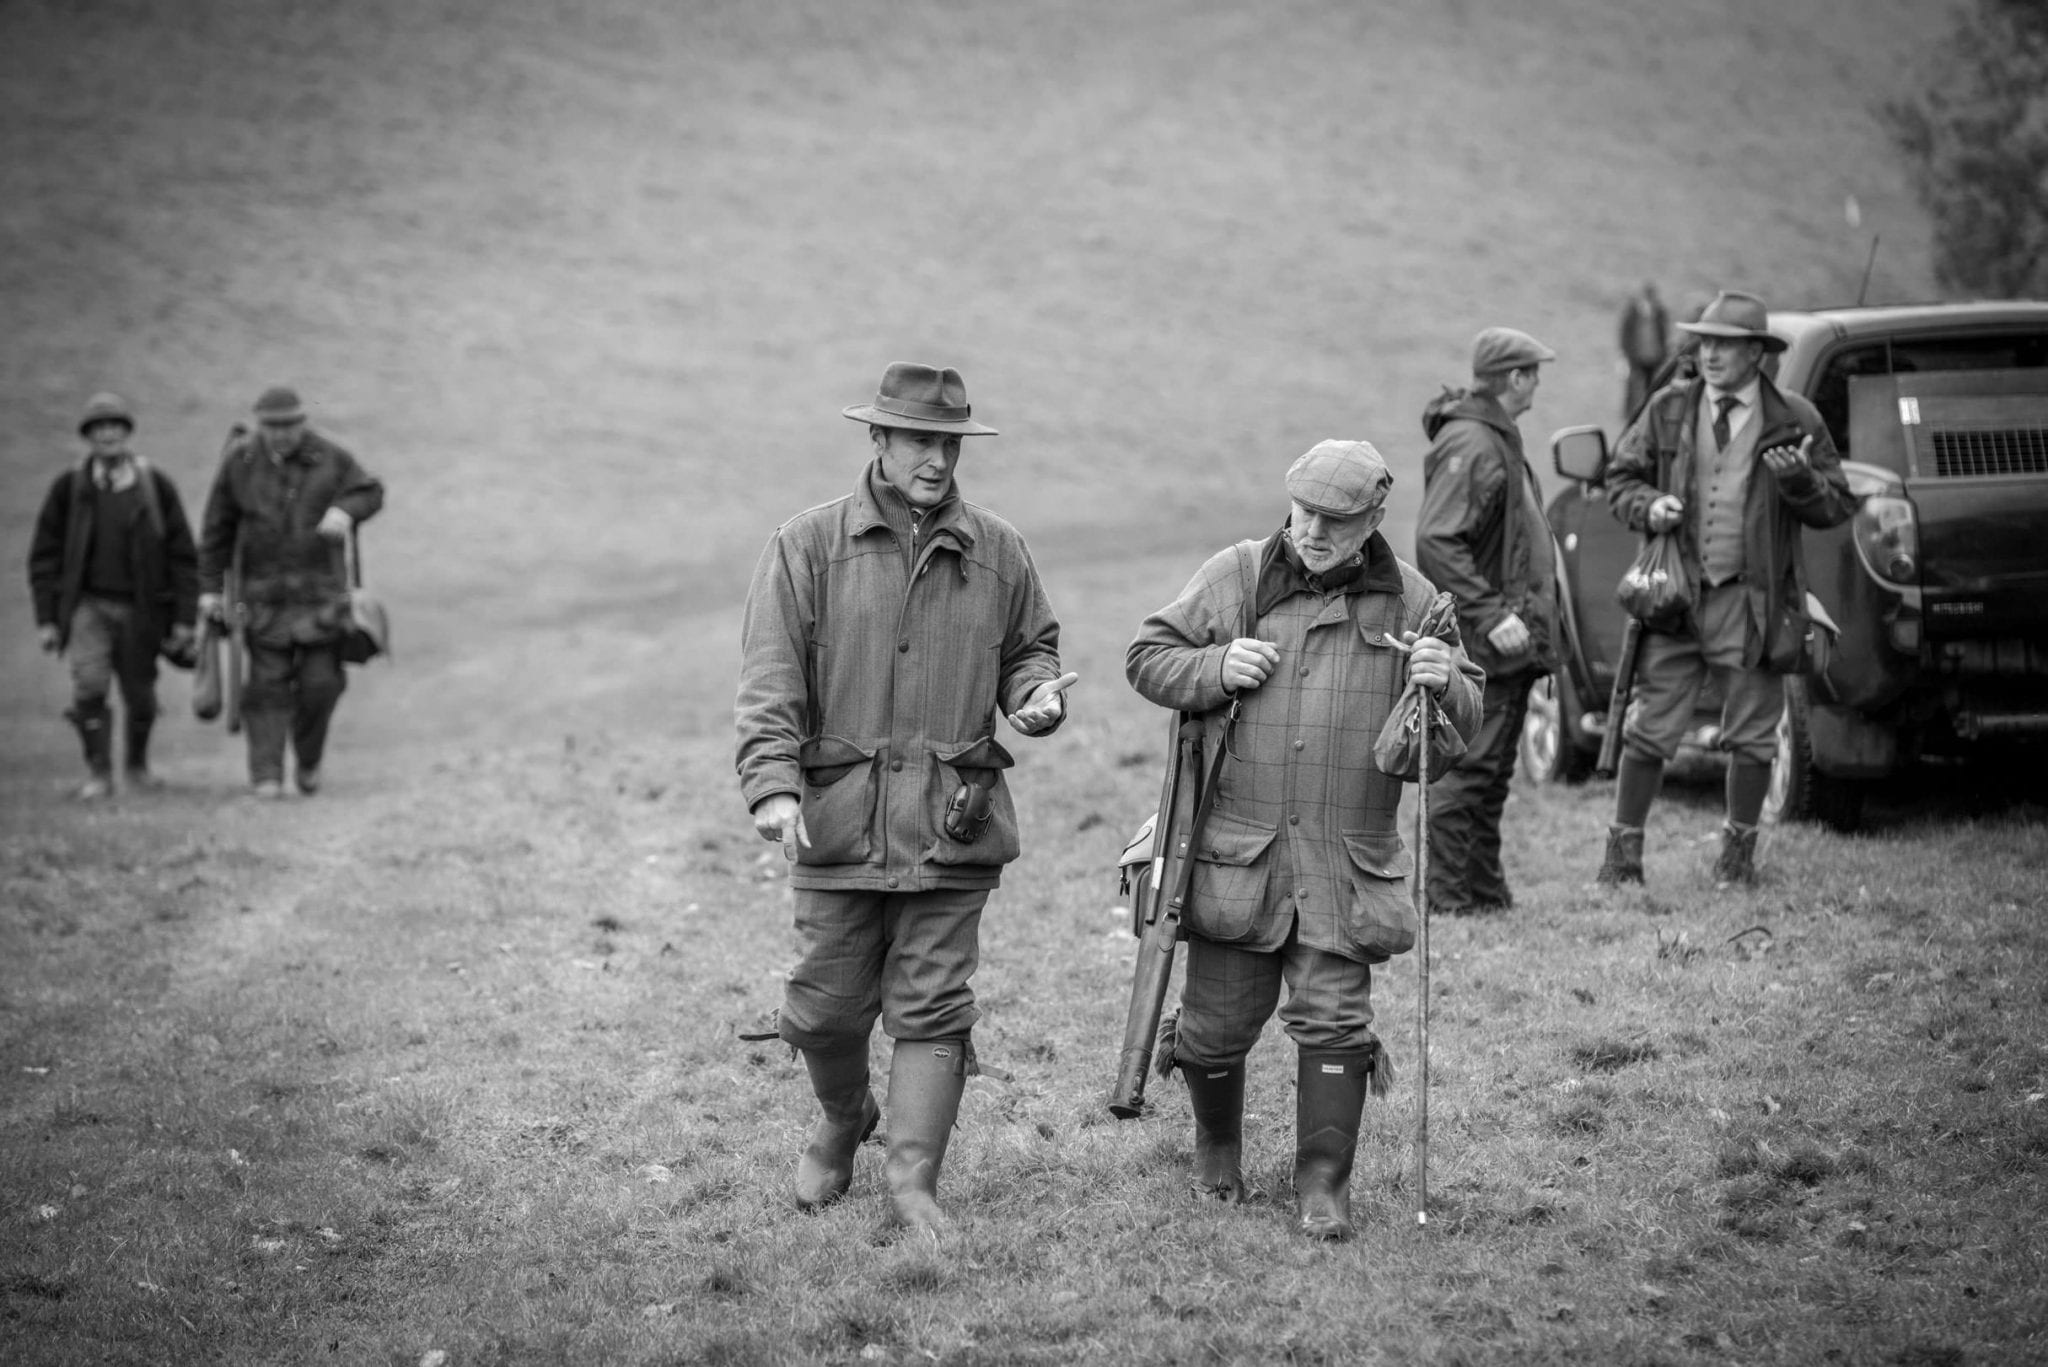 Simulated game shooting at one of our countryside Gloucestershire locations